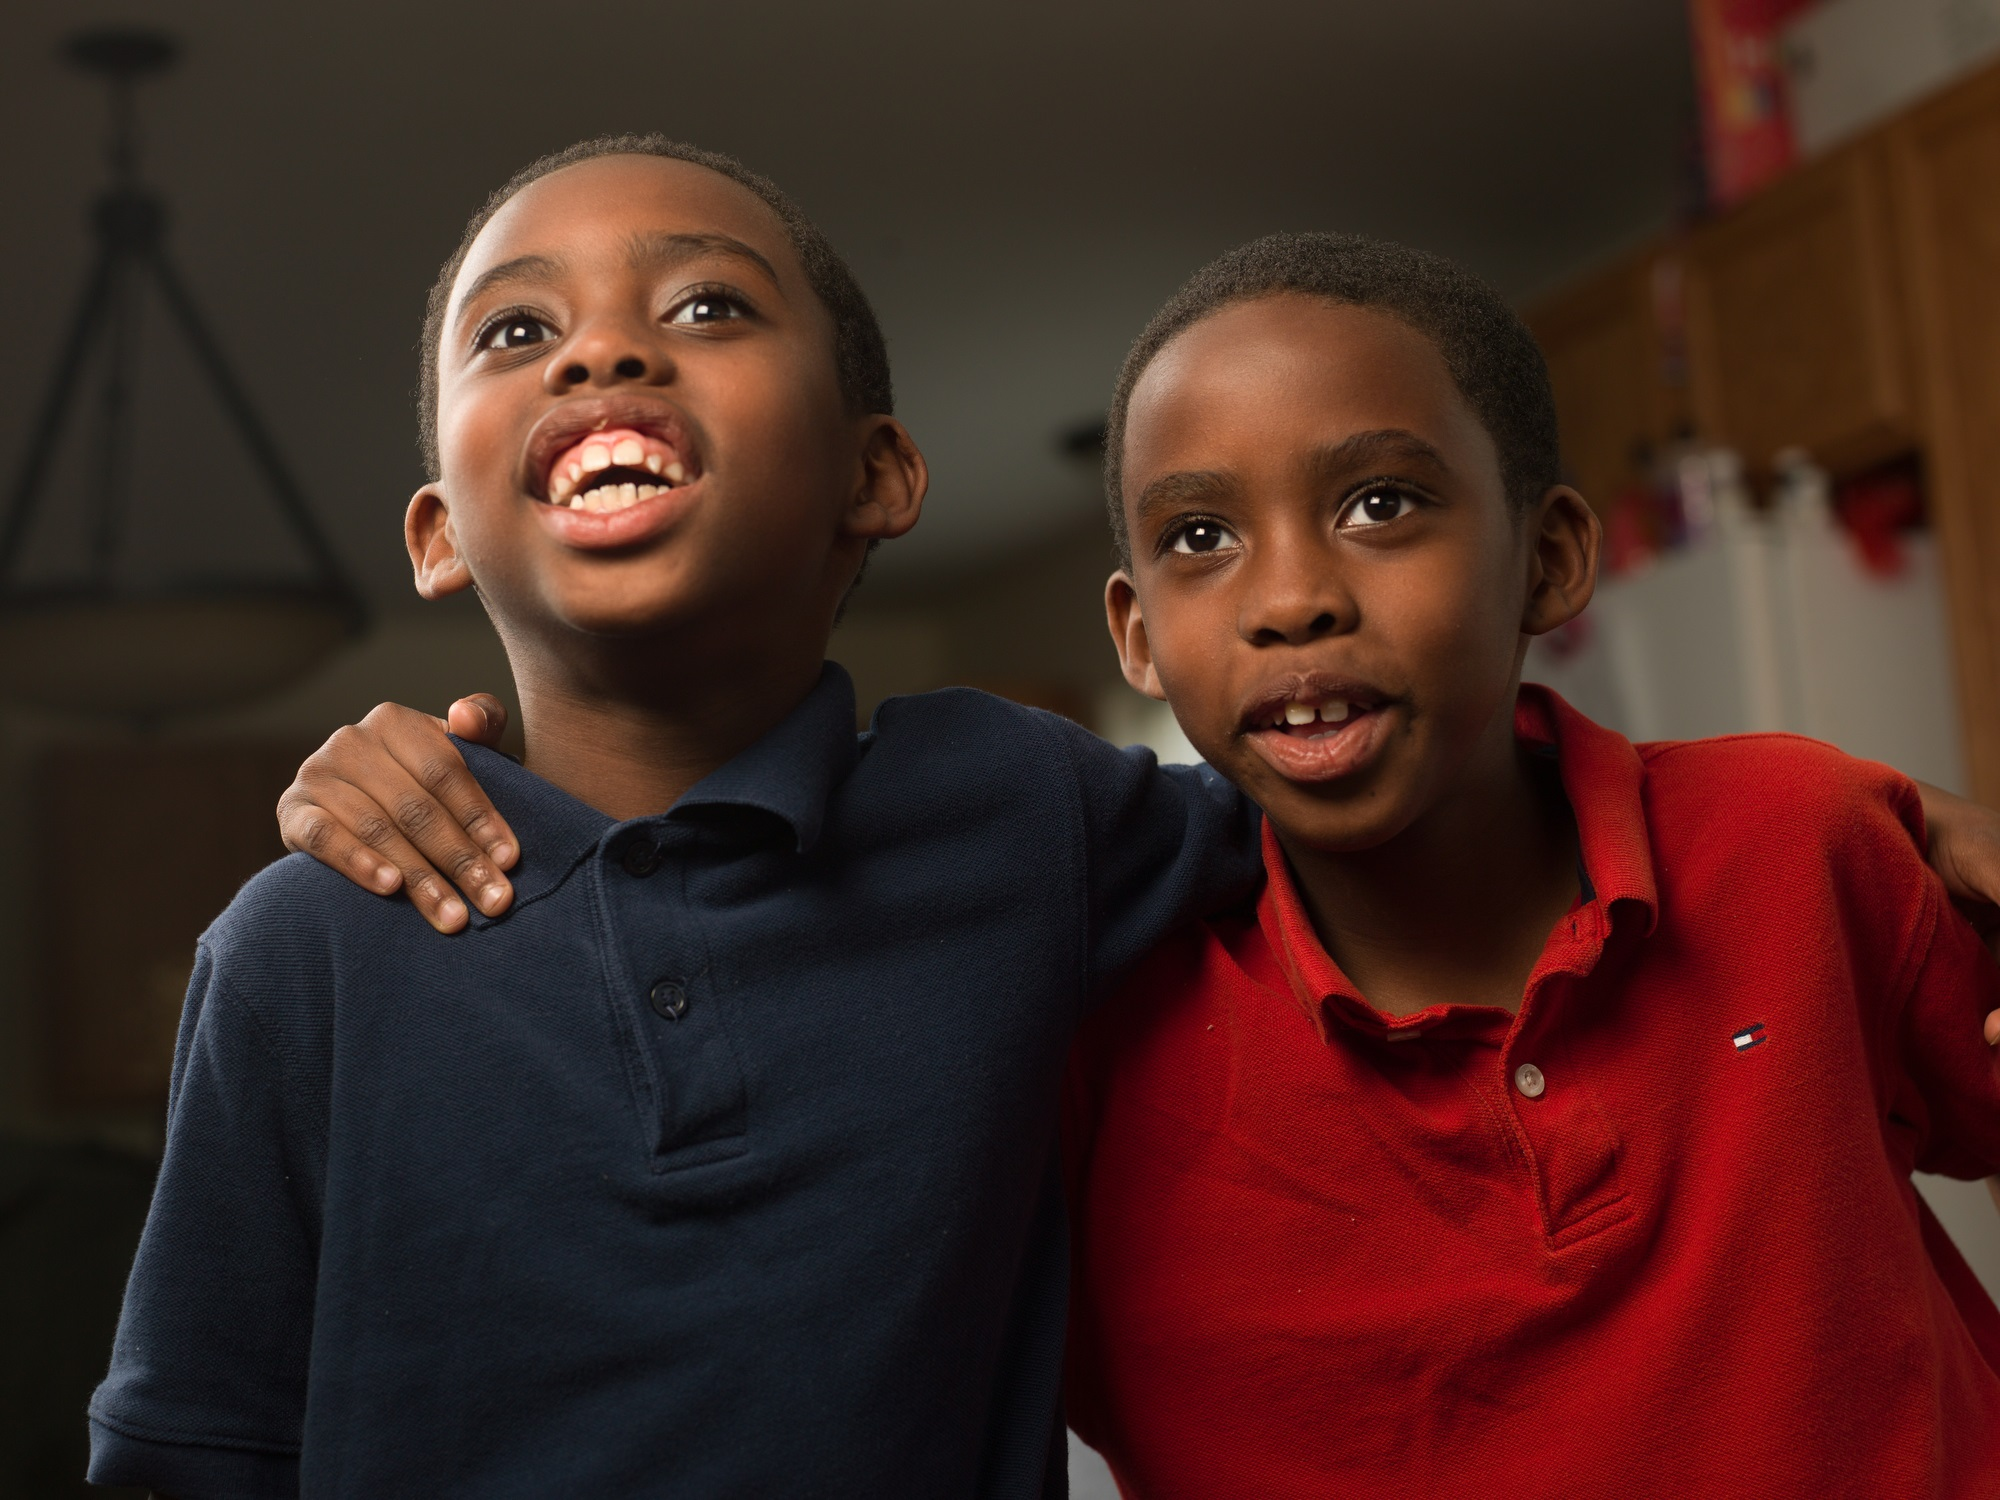 Khalshawn and Keiyon-smaller.jpg